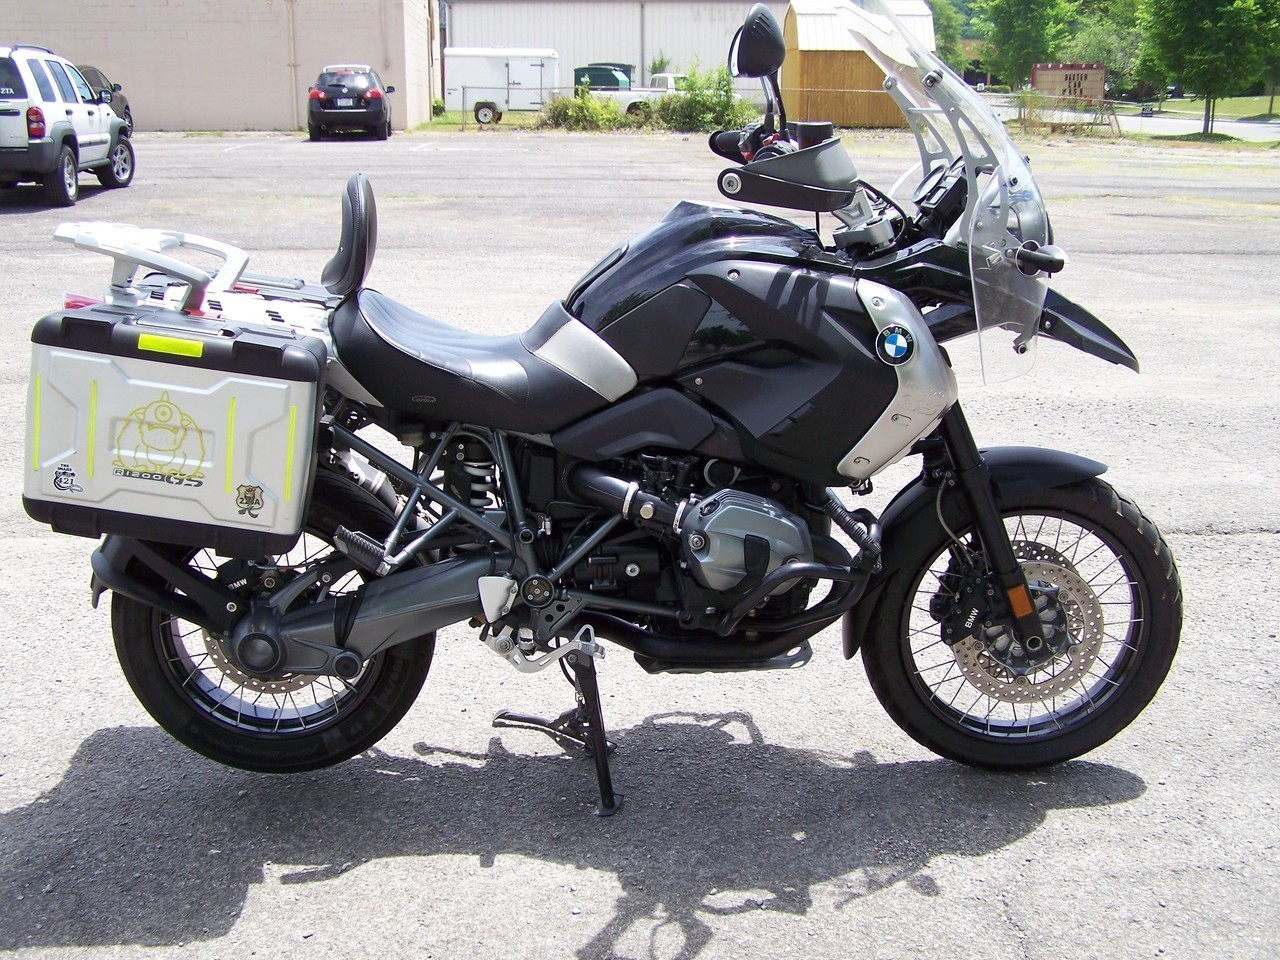 2011 BMW R 1200 GS, motorcycle listing